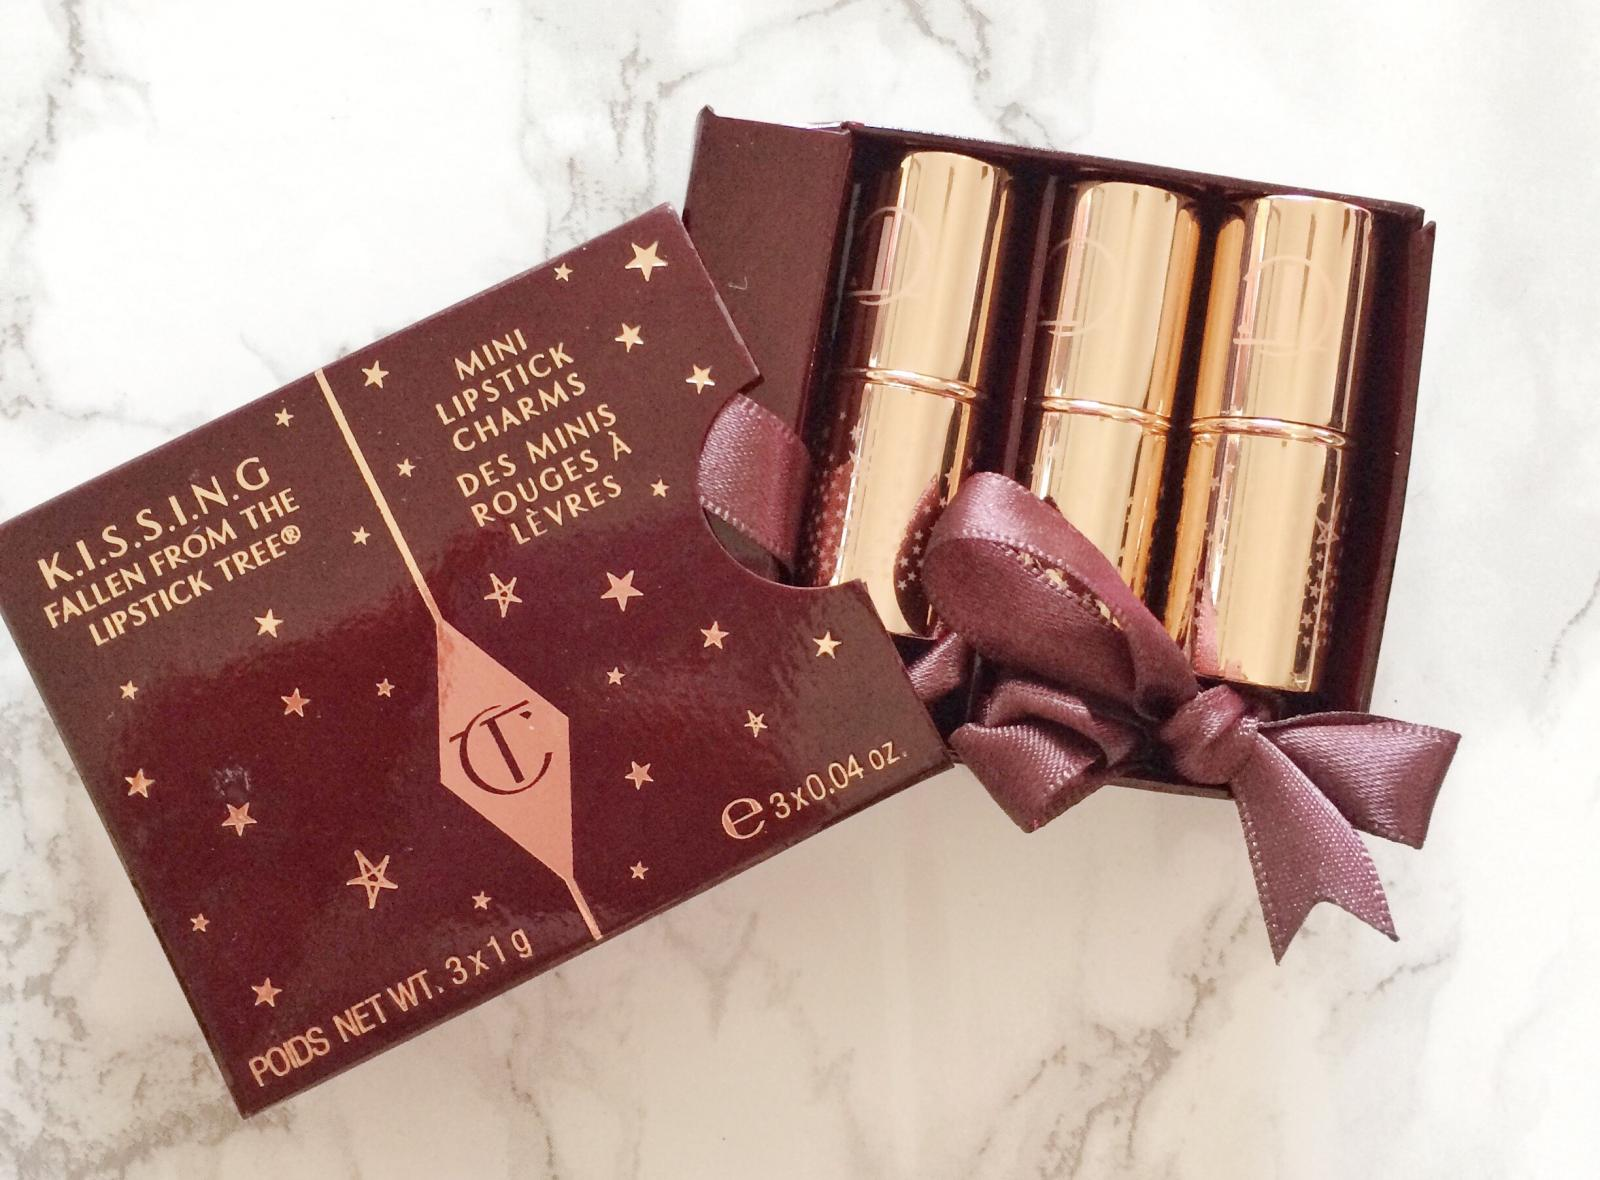 Charlotte Tilbury Kissing Mini Lipstick Charms Review